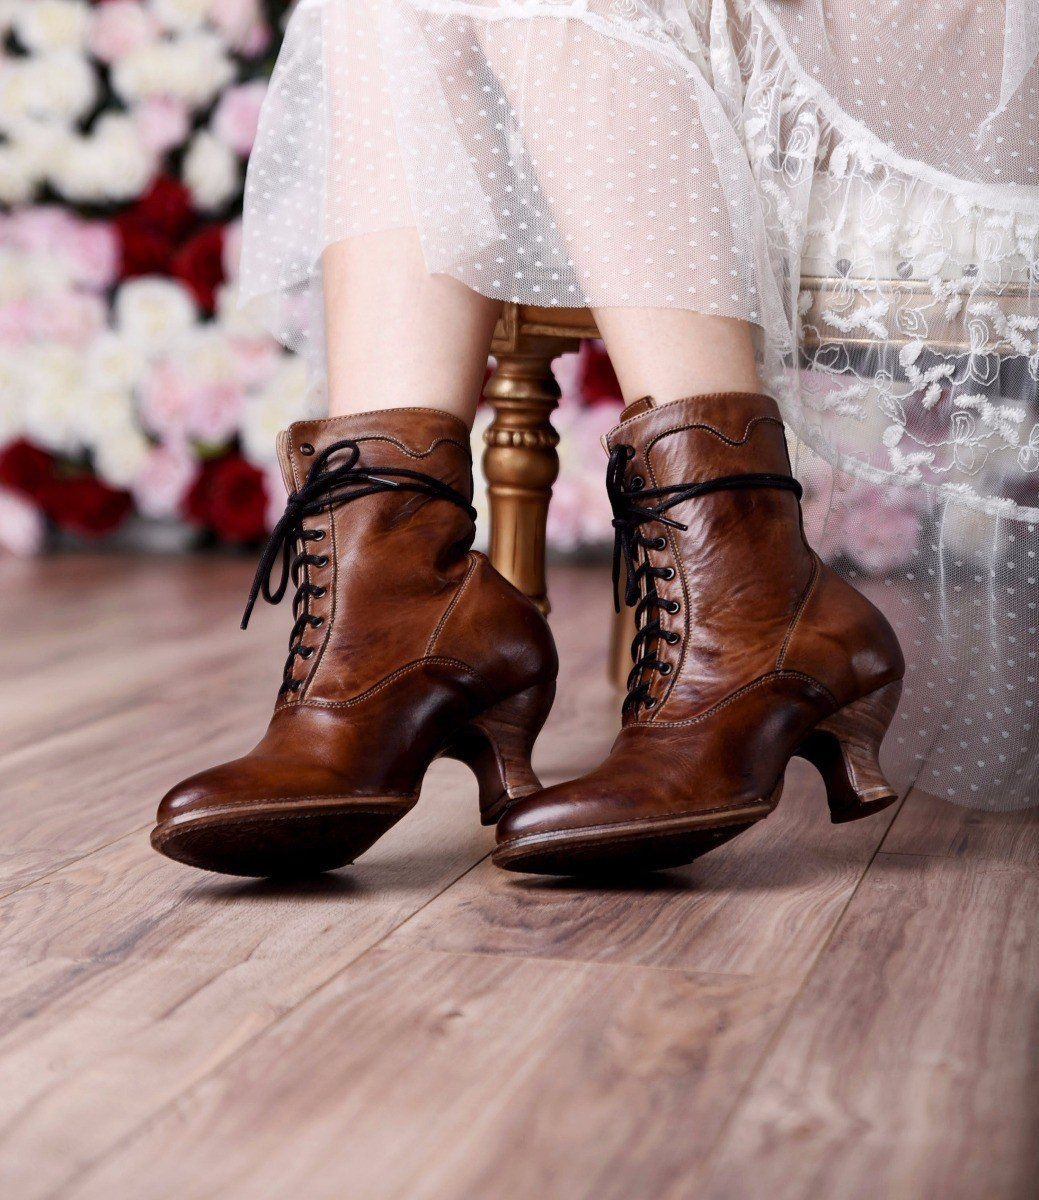 4c26991707 Victorian Shoes Victorian Inspired Leather Ankle Boots in Tan Rustic  $255.00 AT vintagedancer.com